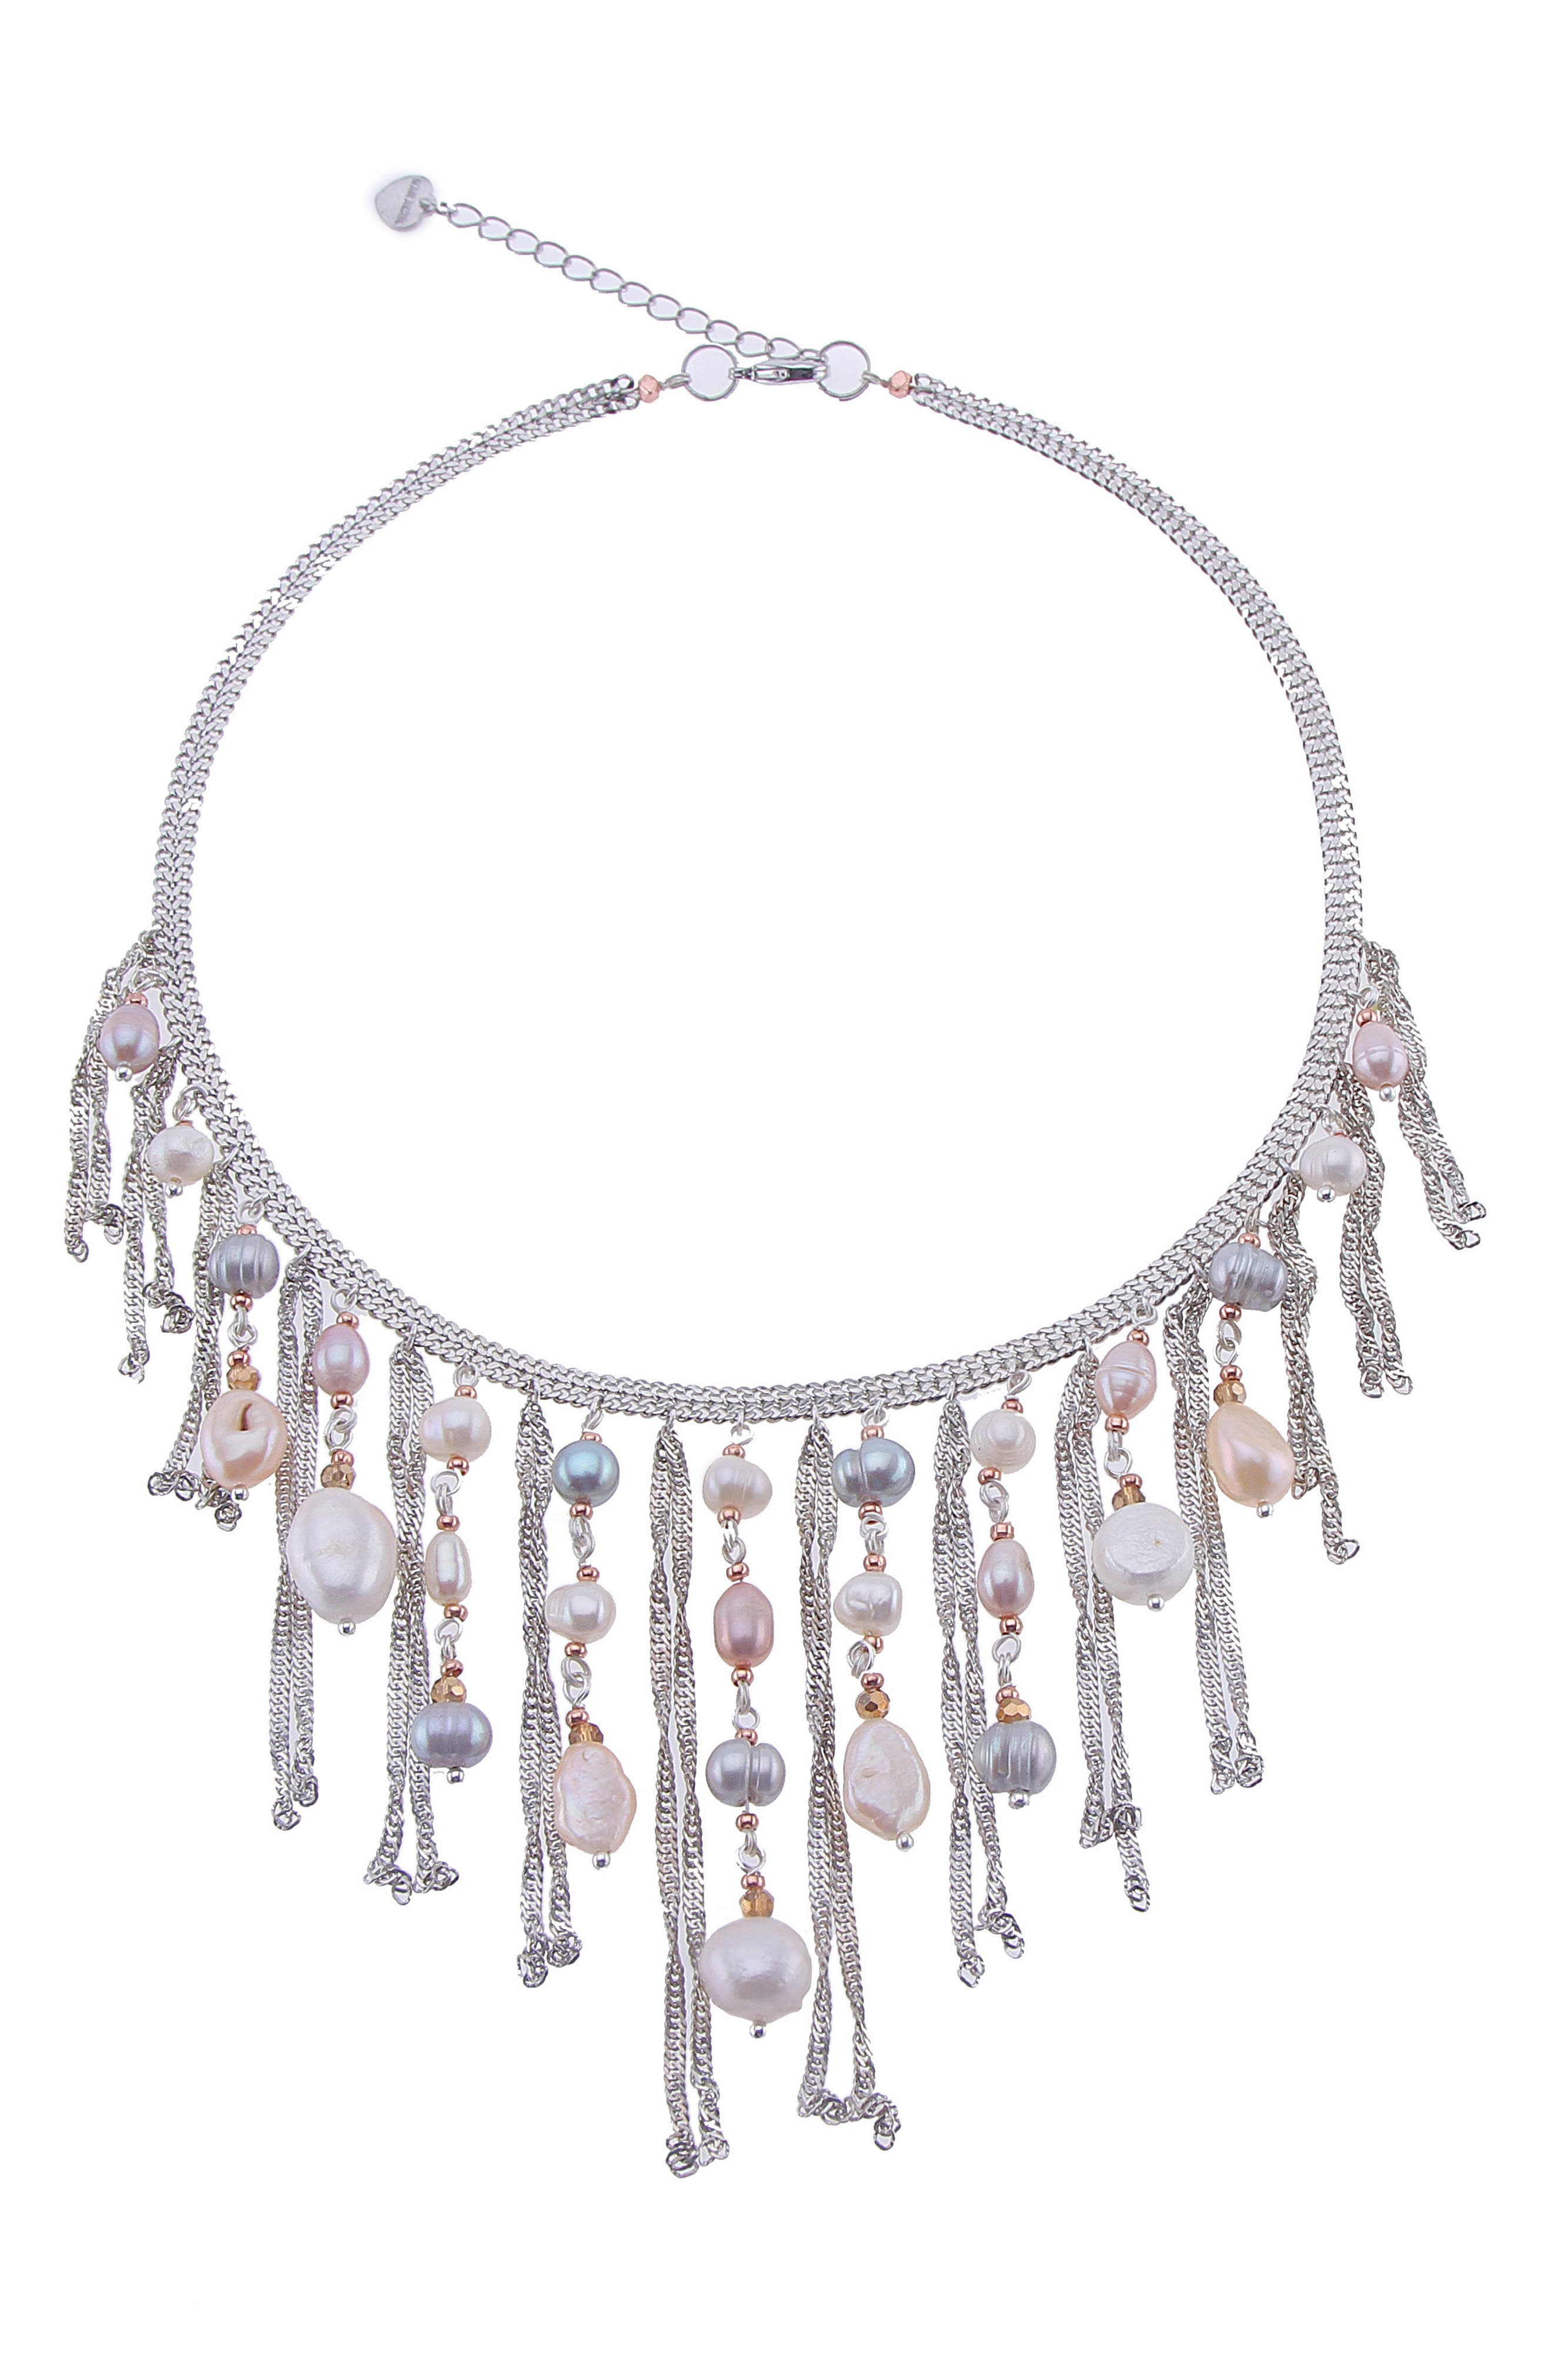 Freshwater Pearl & Chain Fringe Bib Necklace,                             Main thumbnail 1, color,                             100